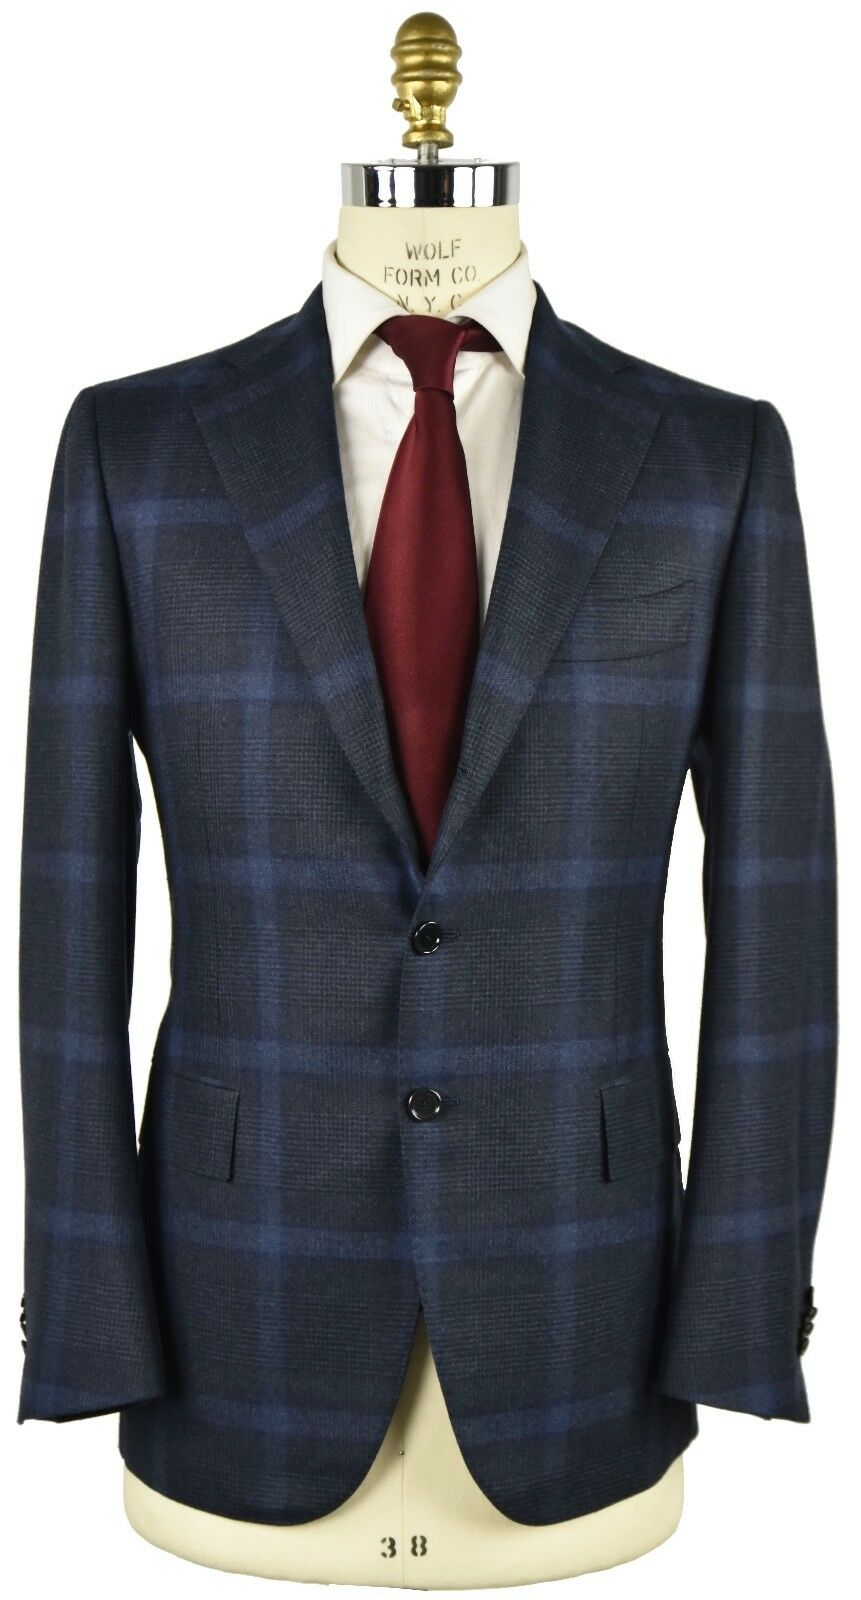 NEW CESARE ATTOLINI SUIT WOOL AND CASHMERE SIZE 38 US 48 EU R7 - ATS14